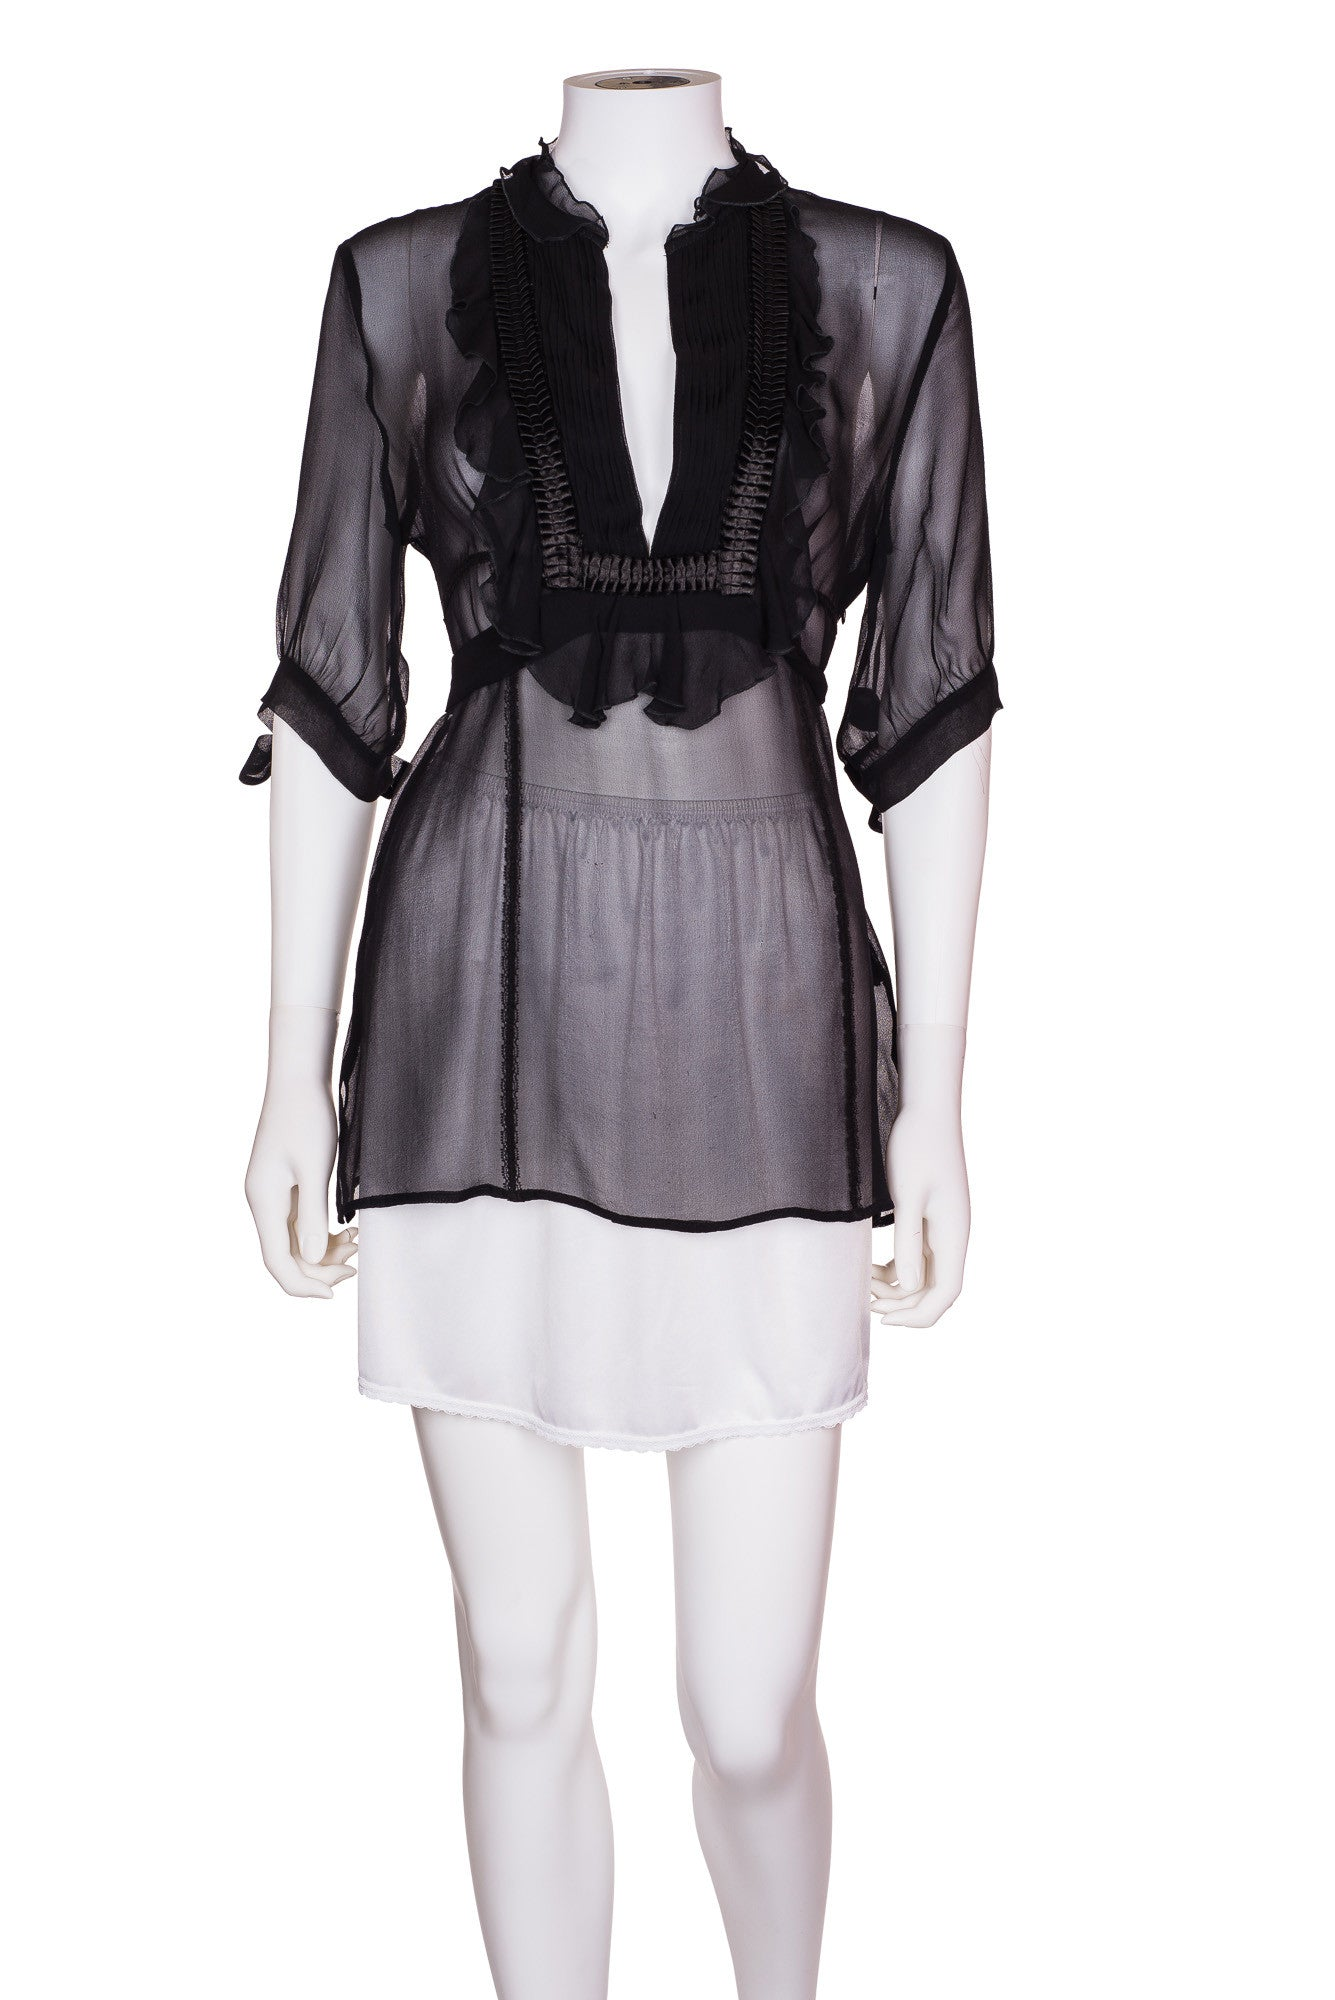 KAREN MILLEN Sheer Blouse